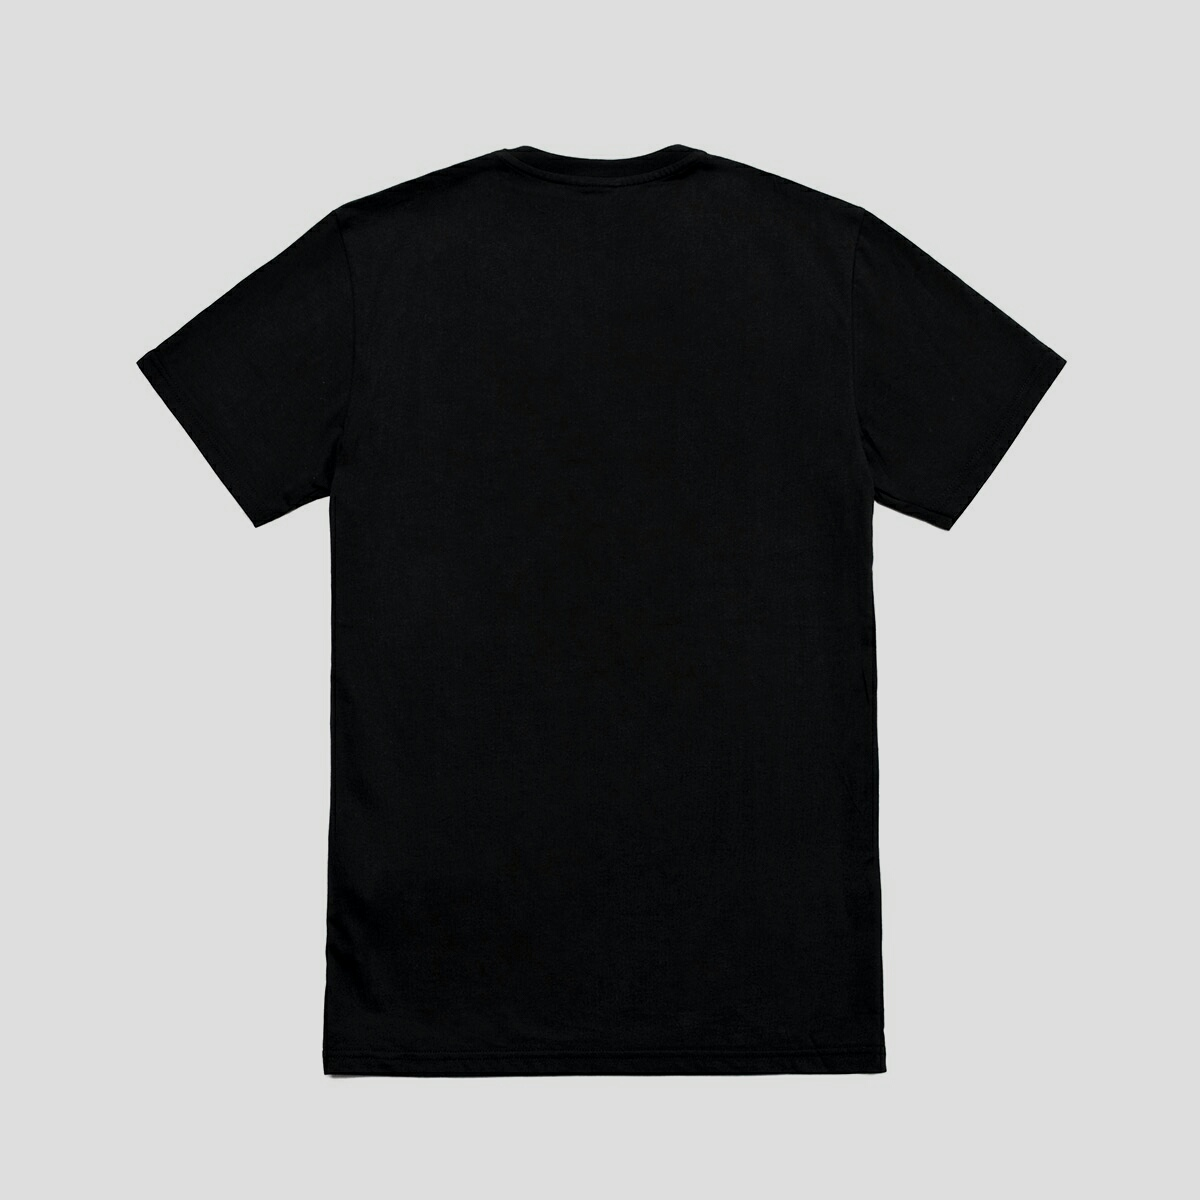 More Info on Wholesale Black T-Shirts In life, there is always a yin and a yang. A plus to a minus, a good and a bad. While the white t-shirt may be untouchable, without a black .